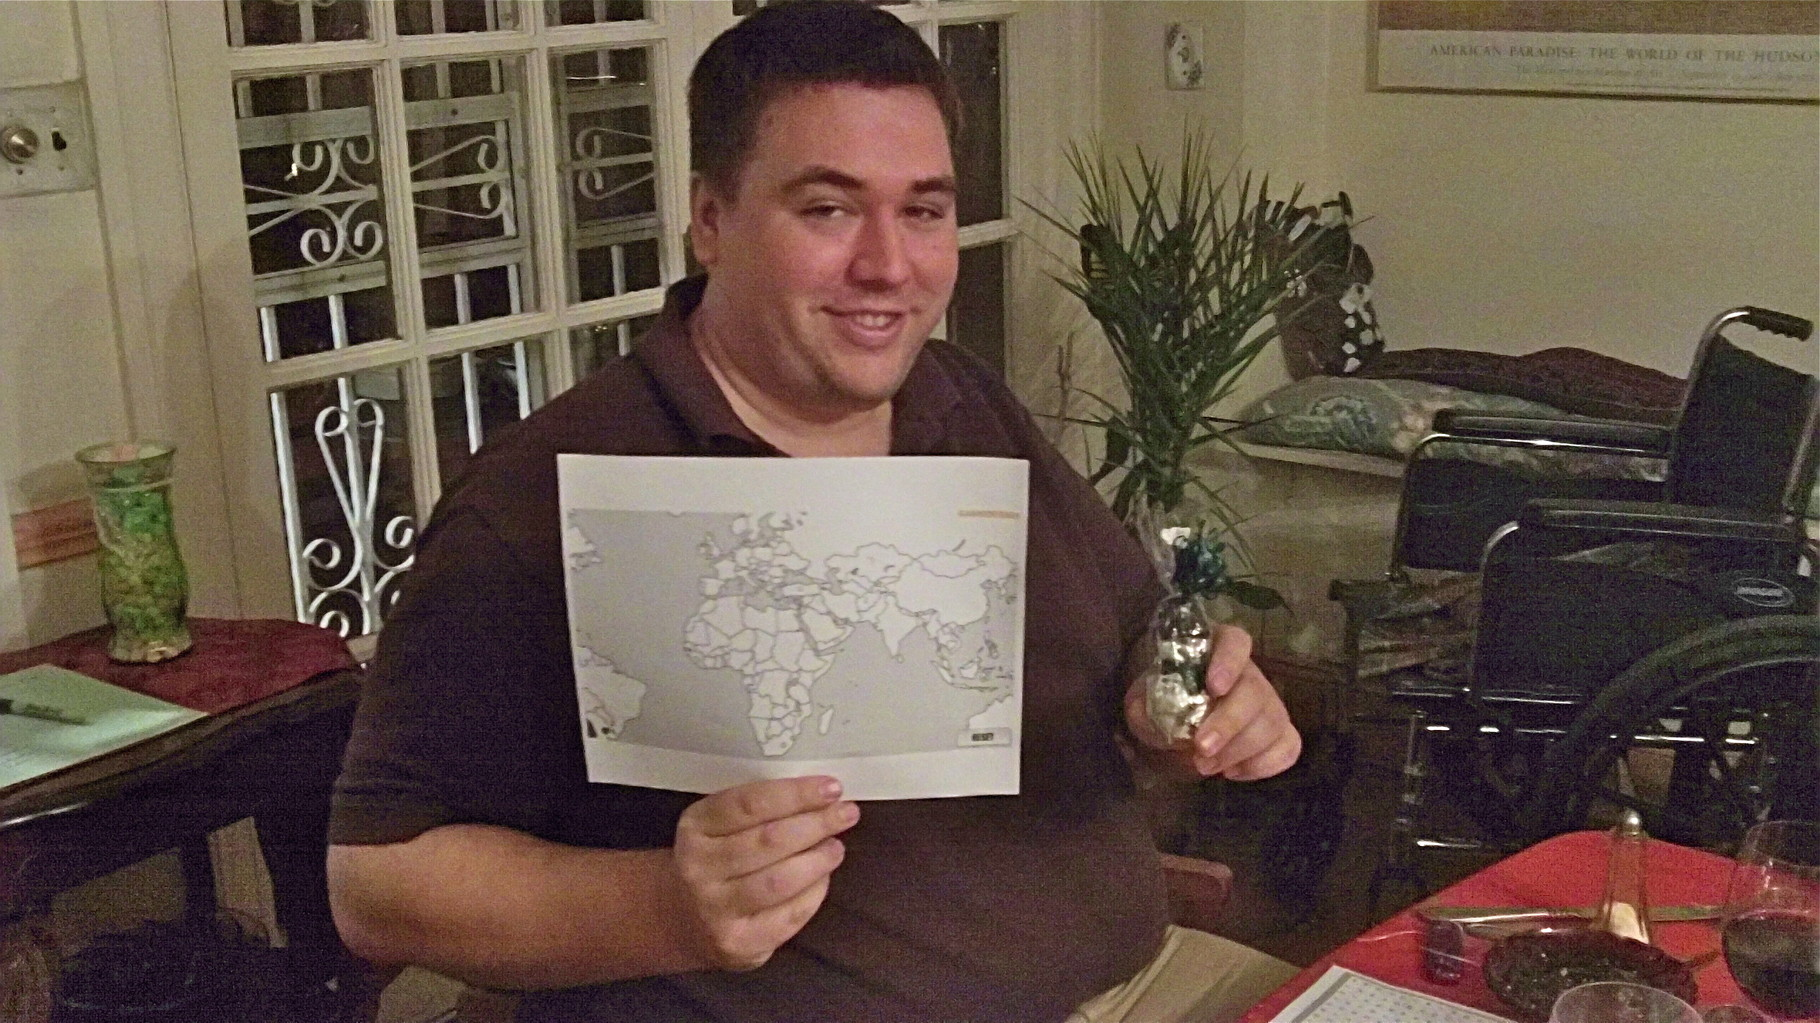 Greg wins the Middle East geography quiz-where is Bethlehem?? etc